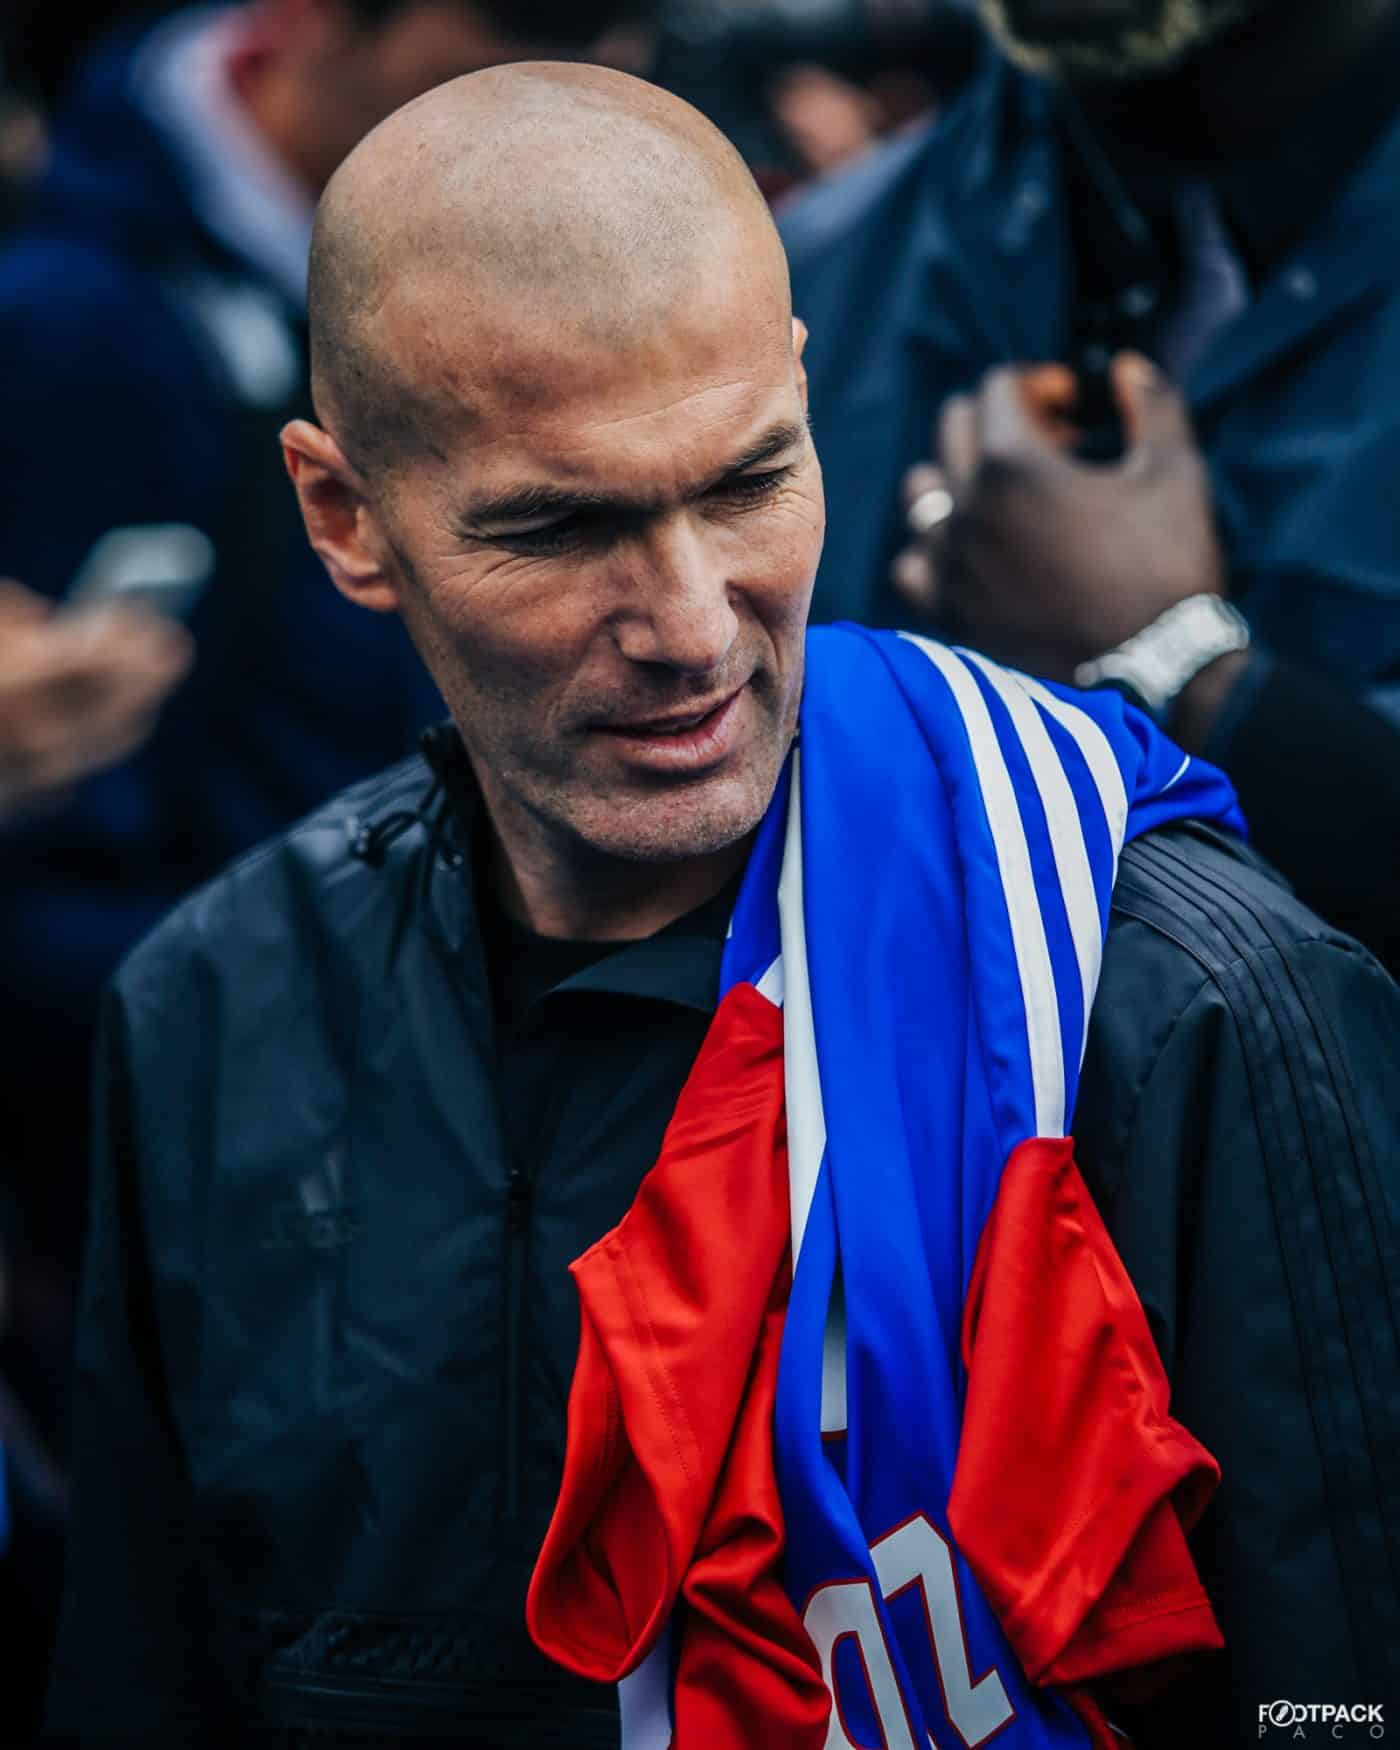 zinedine-zidane-top-50-photos-footpack